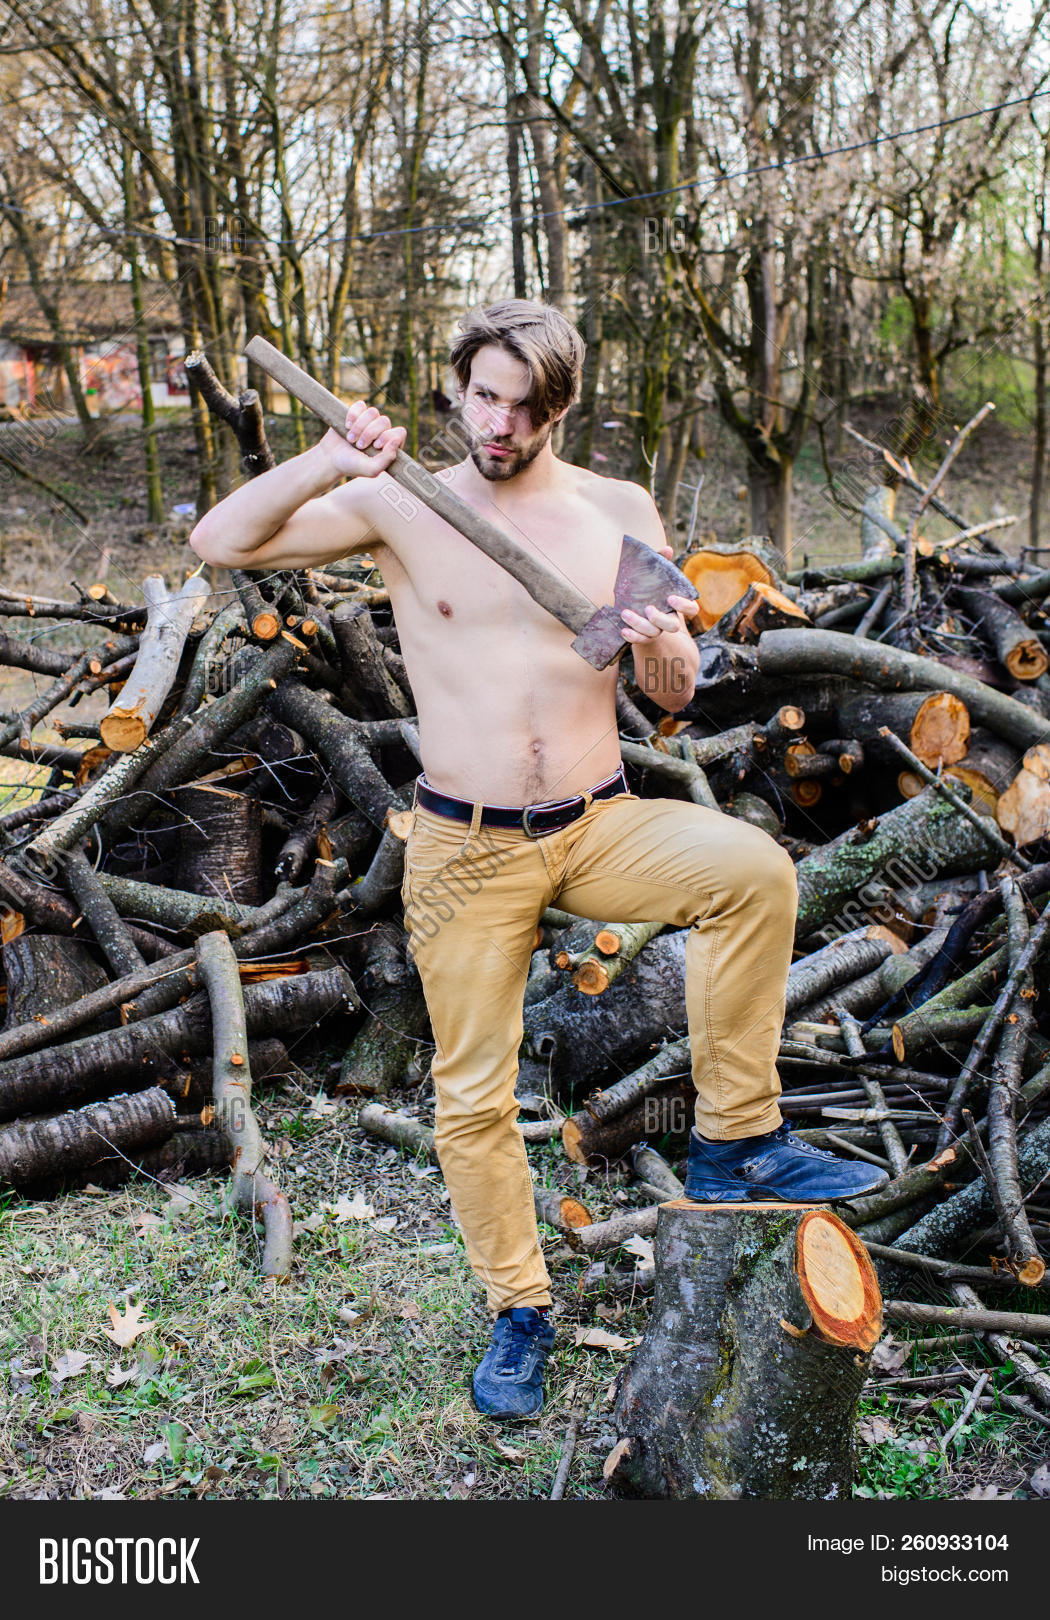 naked in wood